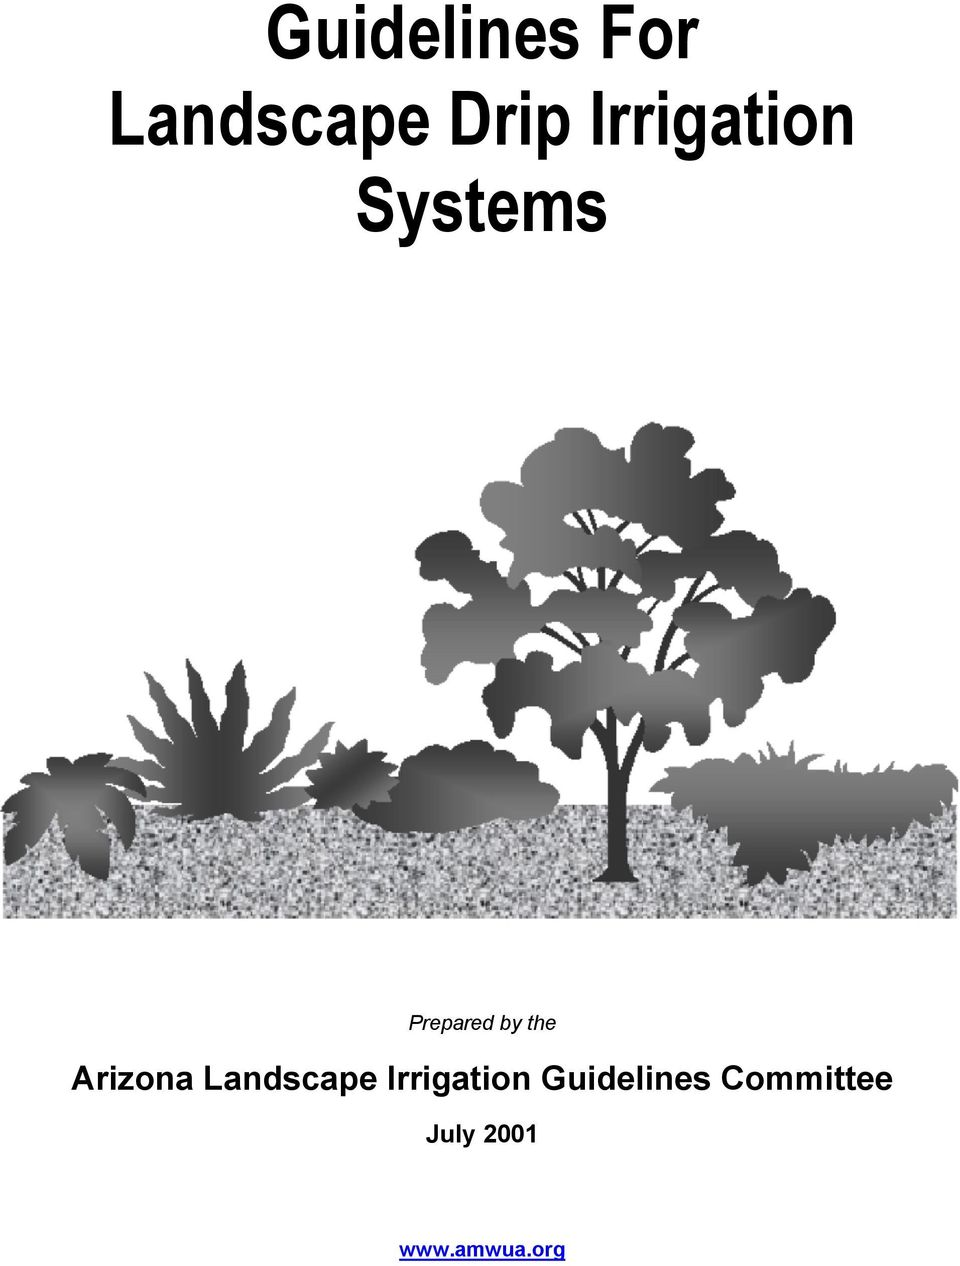 Arizona Landscape Irrigation